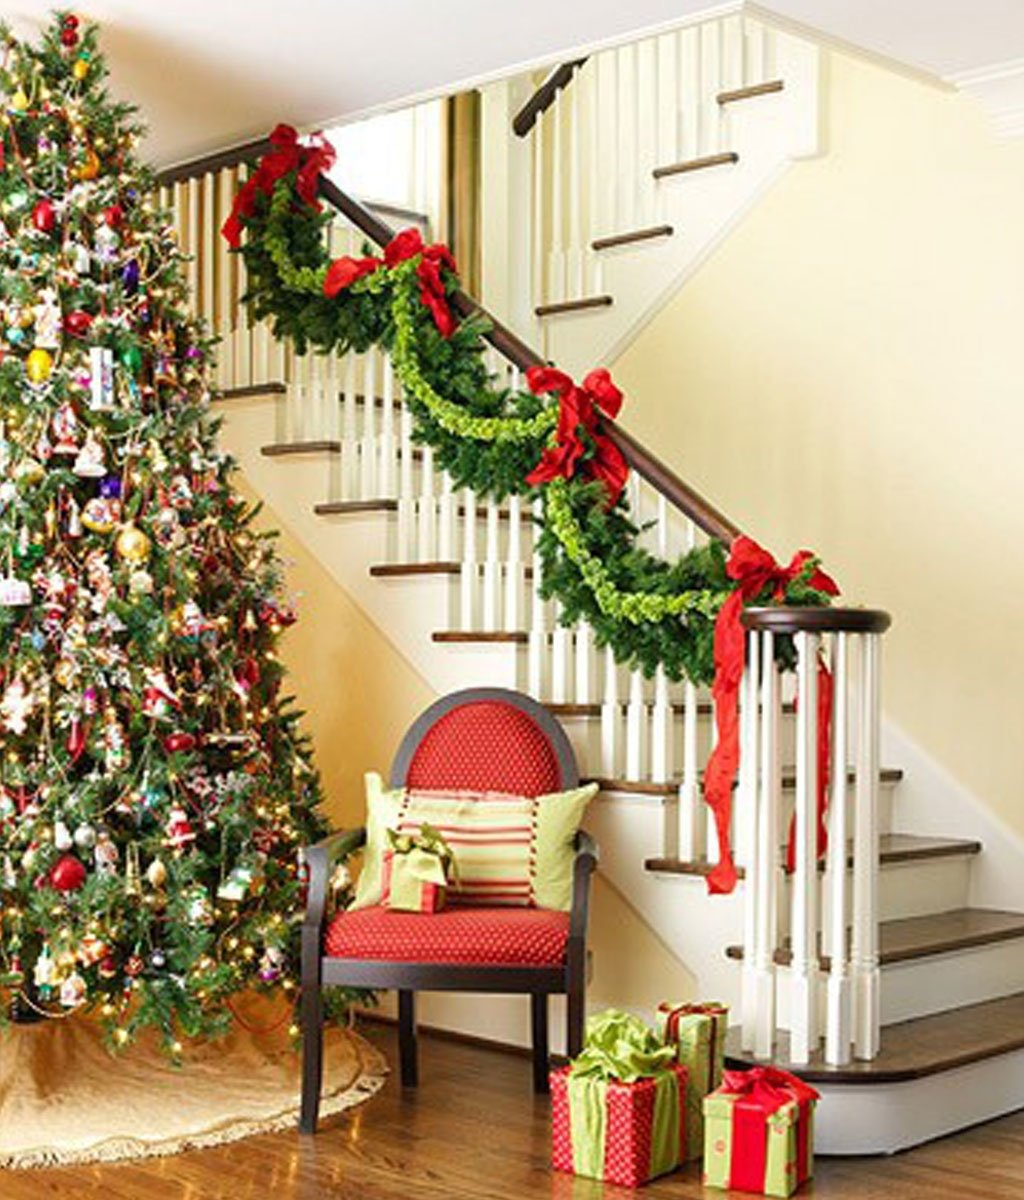 10 Ideal Christmas Decorating Ideas On A Budget budget nana decals wall decals 2021